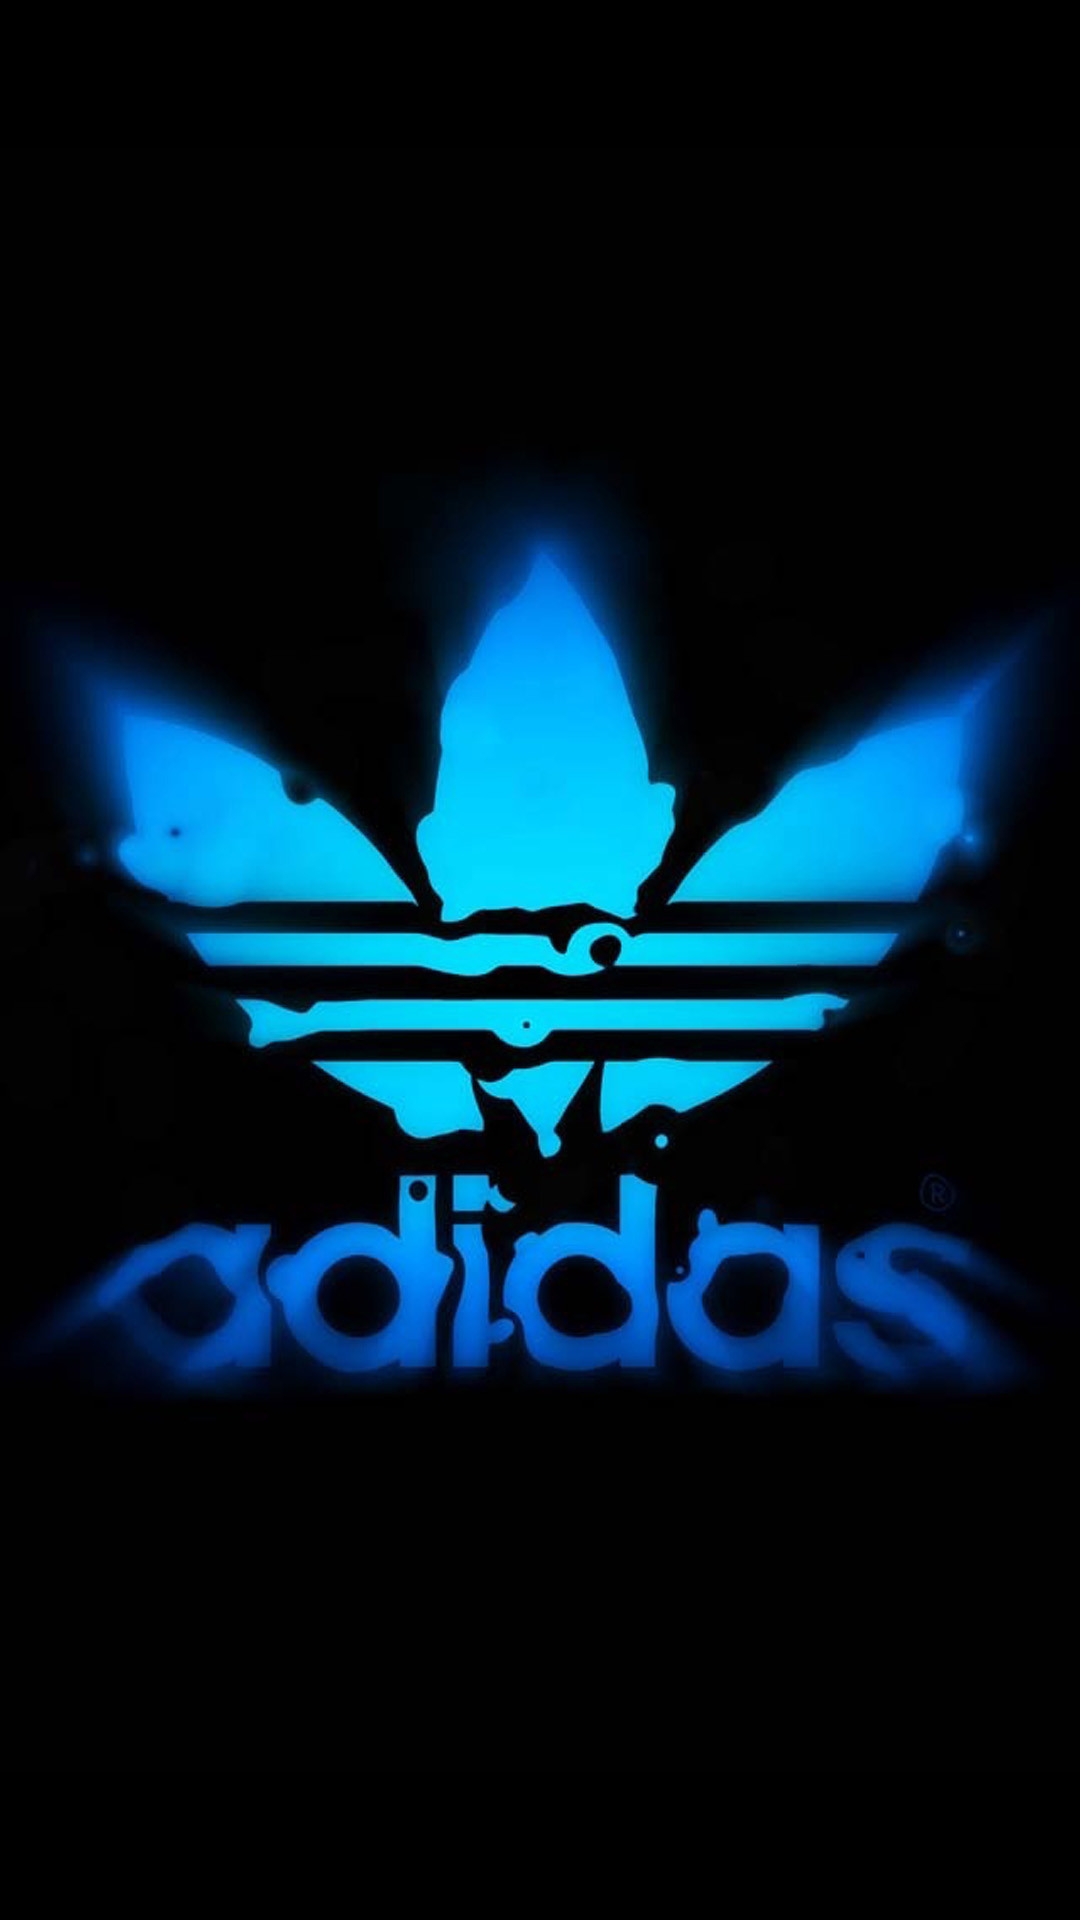 Lion Hd Wallpapers For Iphone Adidas Logo Wallpaper 2018 71 Images